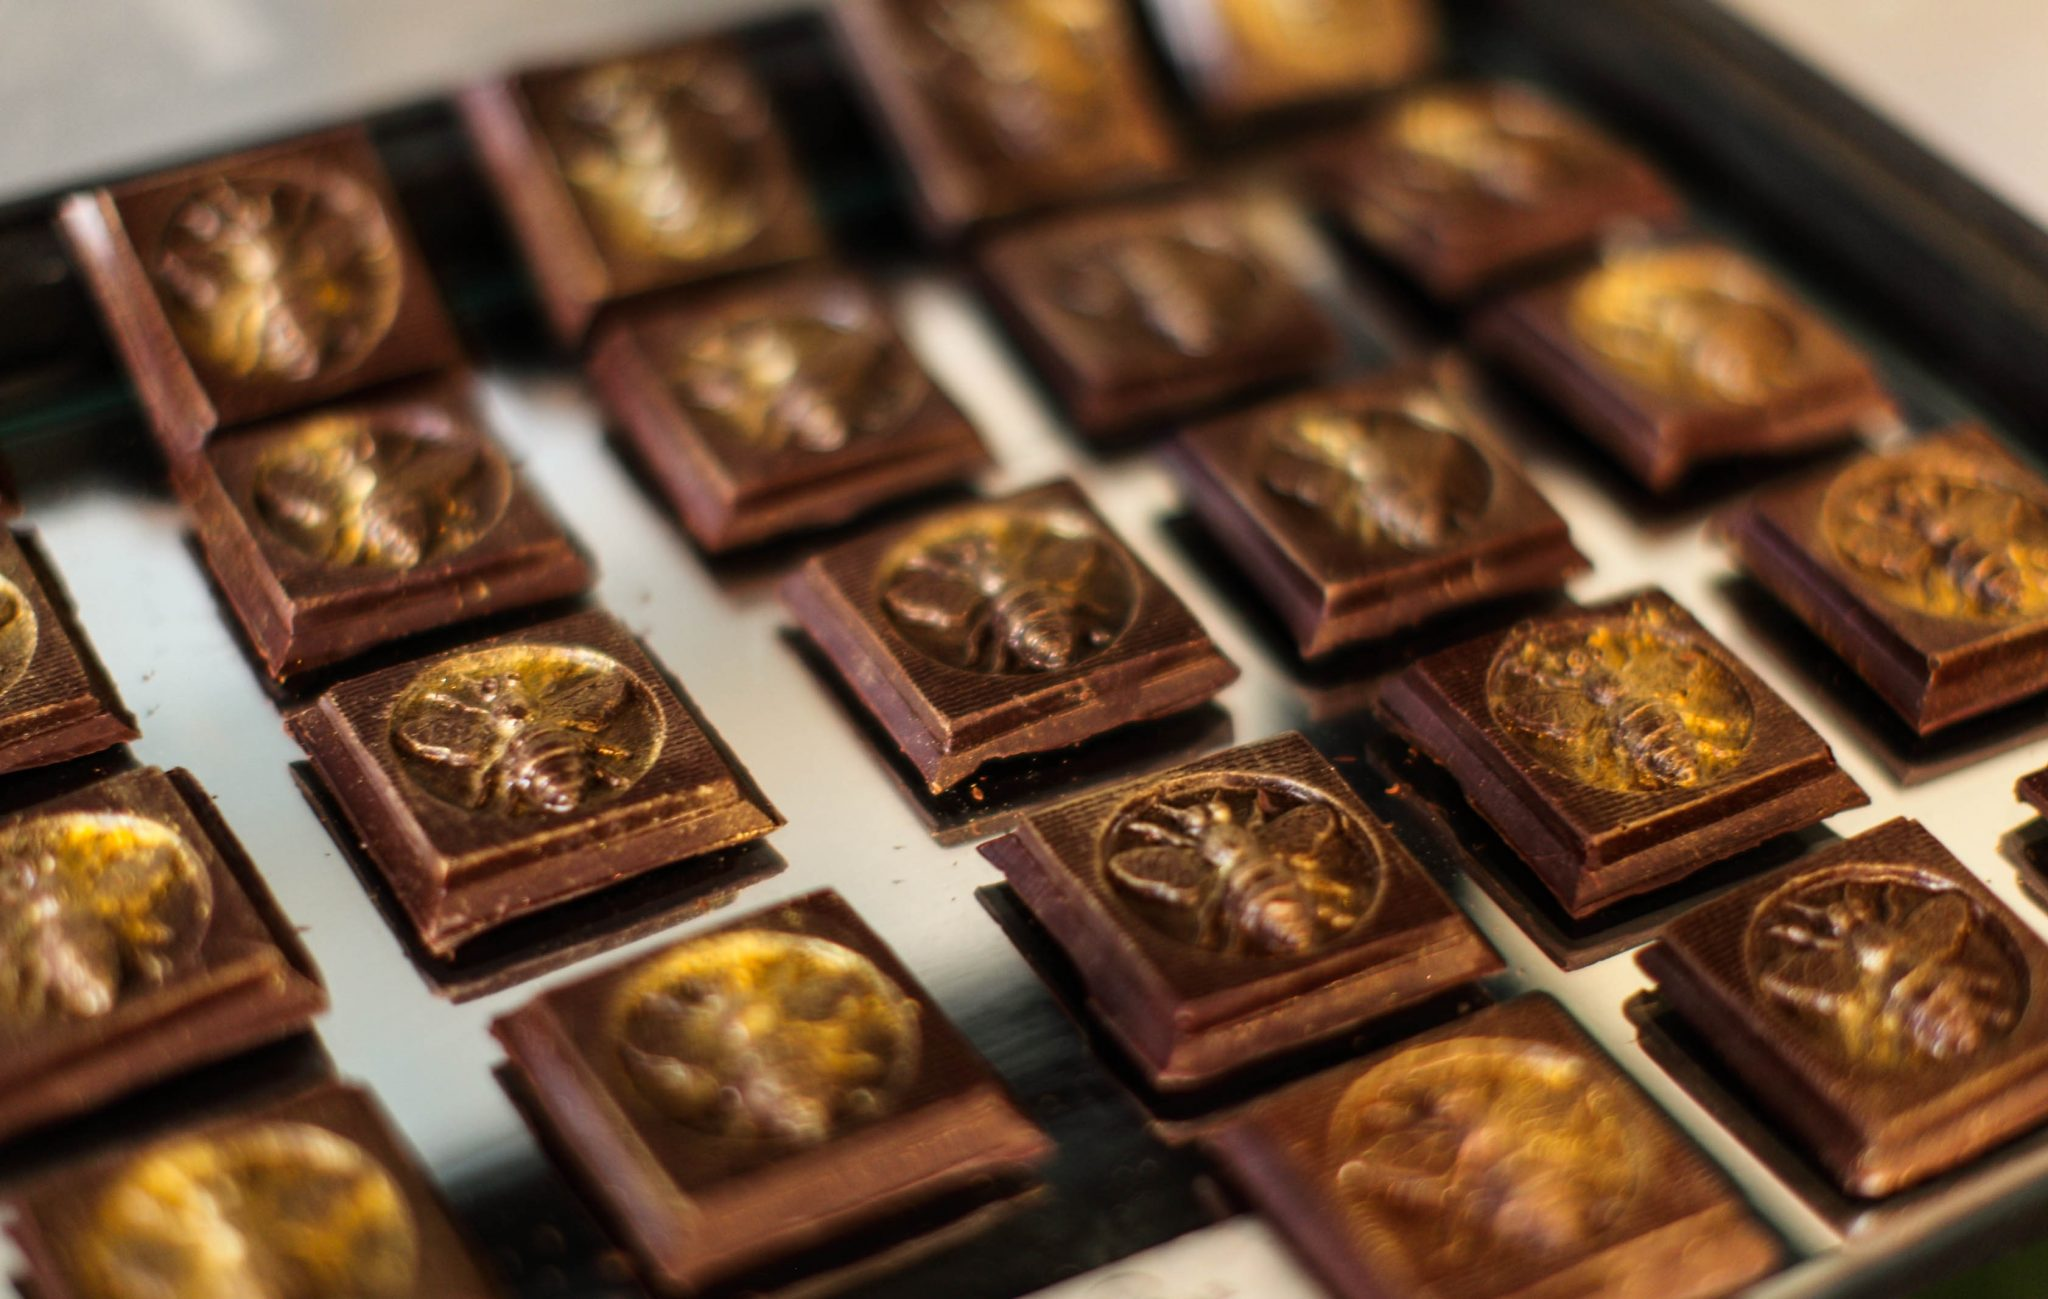 Forget sugarplums. One of our favorite chocolatiers, Chocolat by Adam Turoni, serves up delectable truffles from his beautiful storefronts in Savannah. The packaging is festive and the confections are works of art. Order here. If you order an extra box for yourself, your secret will be safe with us.